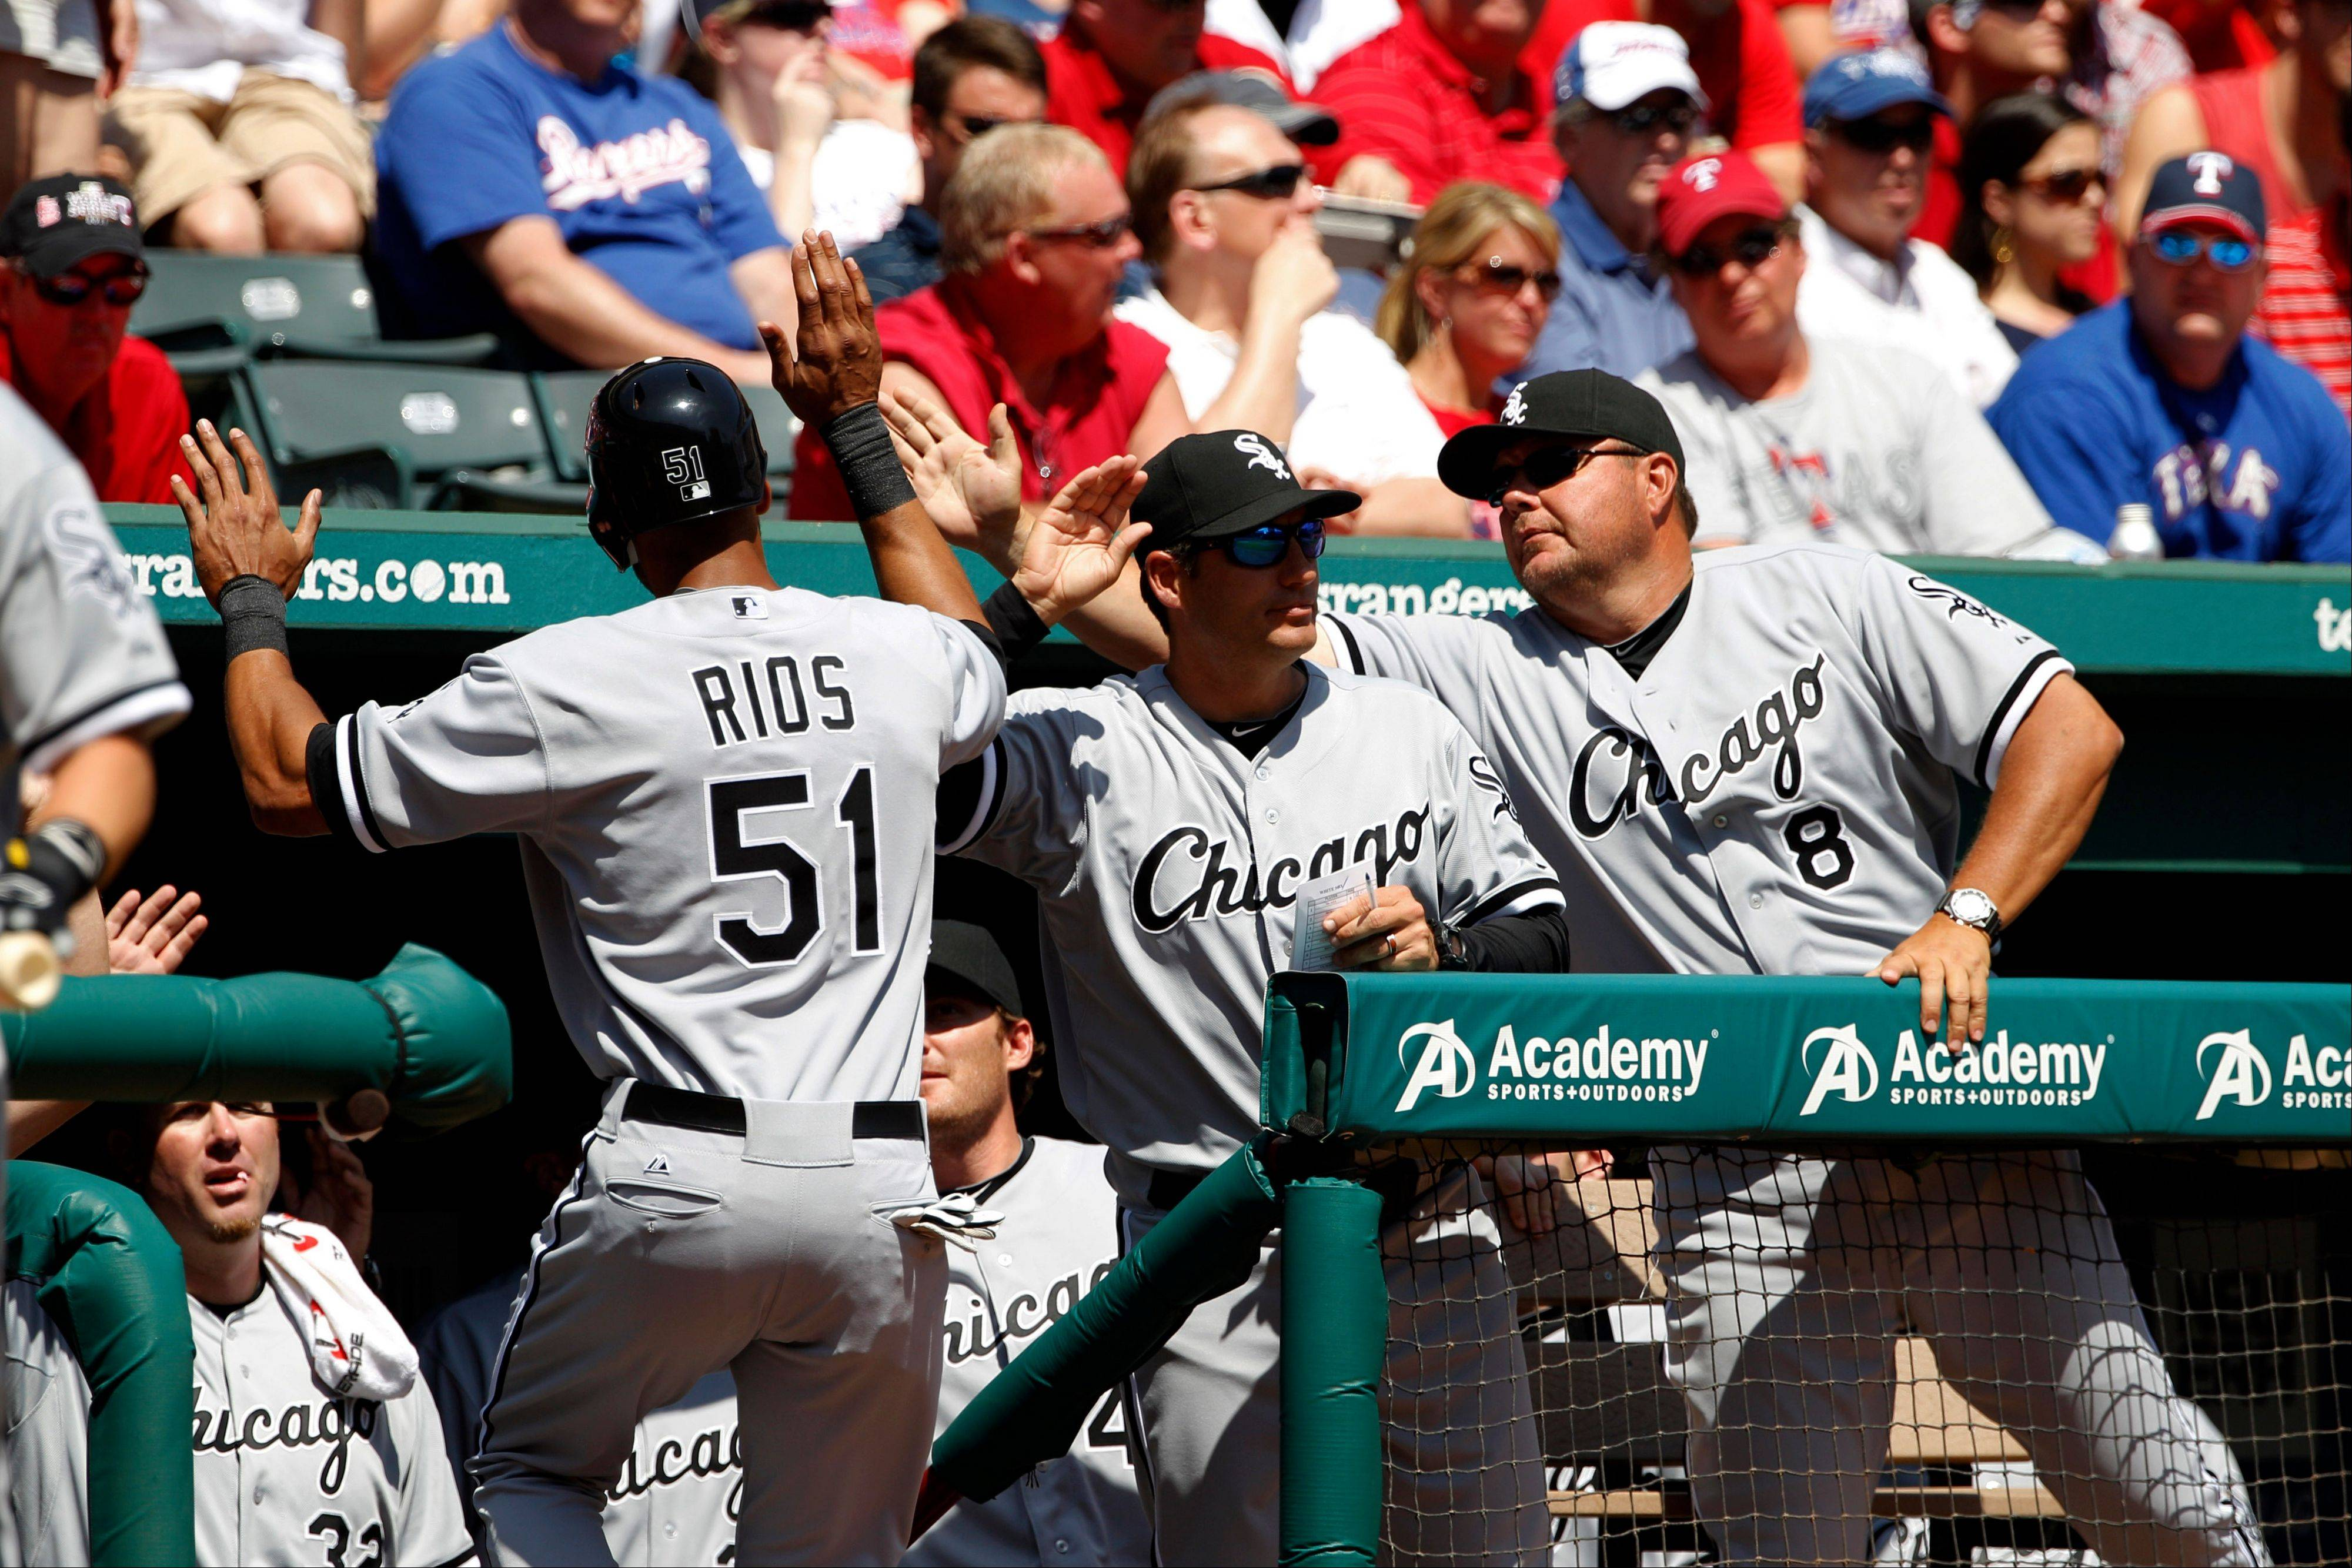 Chicago White Sox's Alex Rios (51) celebrates in the dugout after scoring on a single by Alexei Ramirez against the Texas Rangers during the sixth inning of a baseball game, Friday, April 6, 2012, in Arlington, Texas.